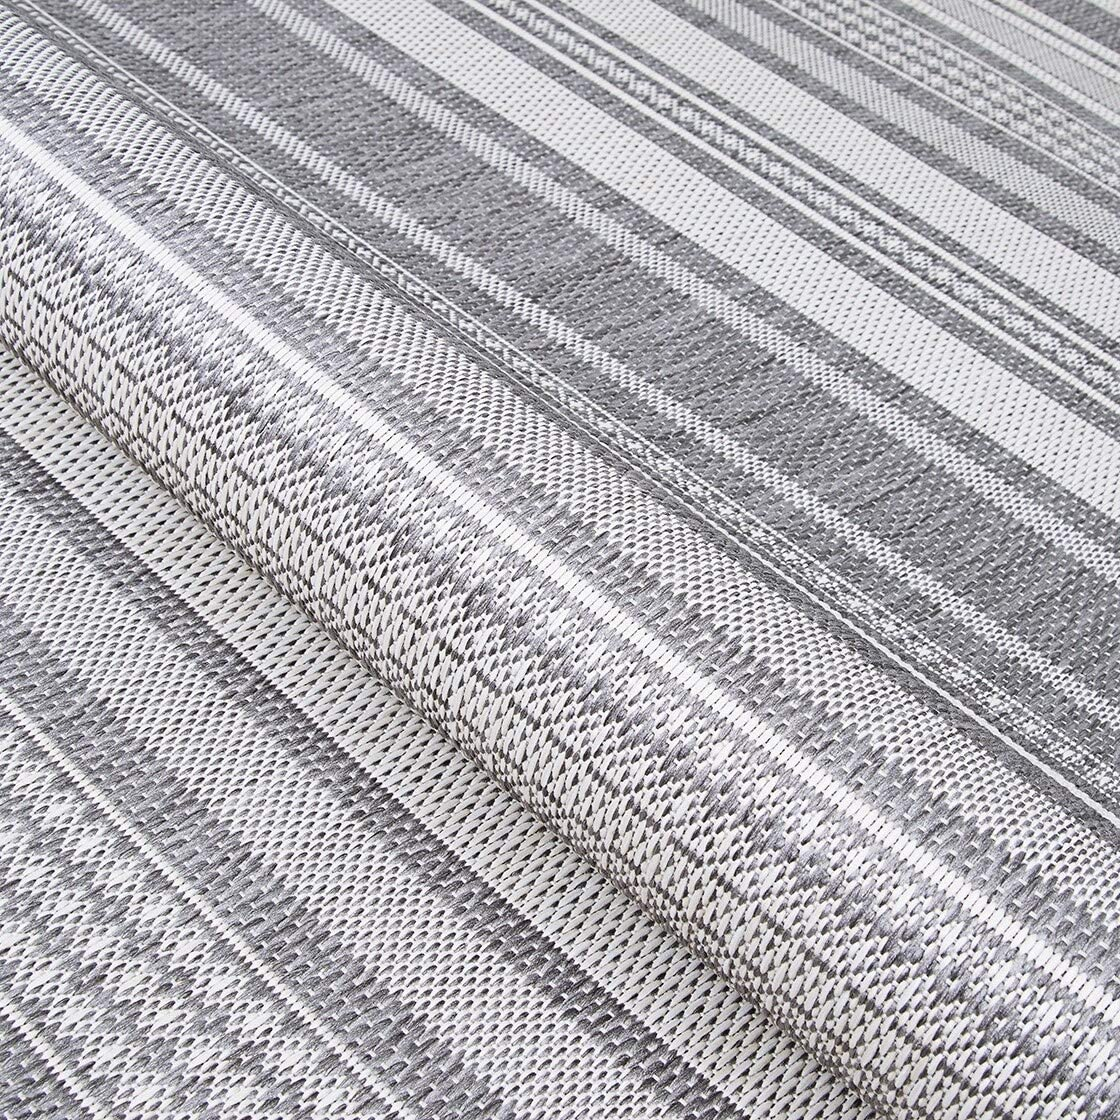 "Stripe Champagne Grey Indoor/Outdoor Area Rug 5'10"" X 9'2"" Grey Ivory Casual Transitional Rectangle Polypropylene Synthetic Contains Latex"